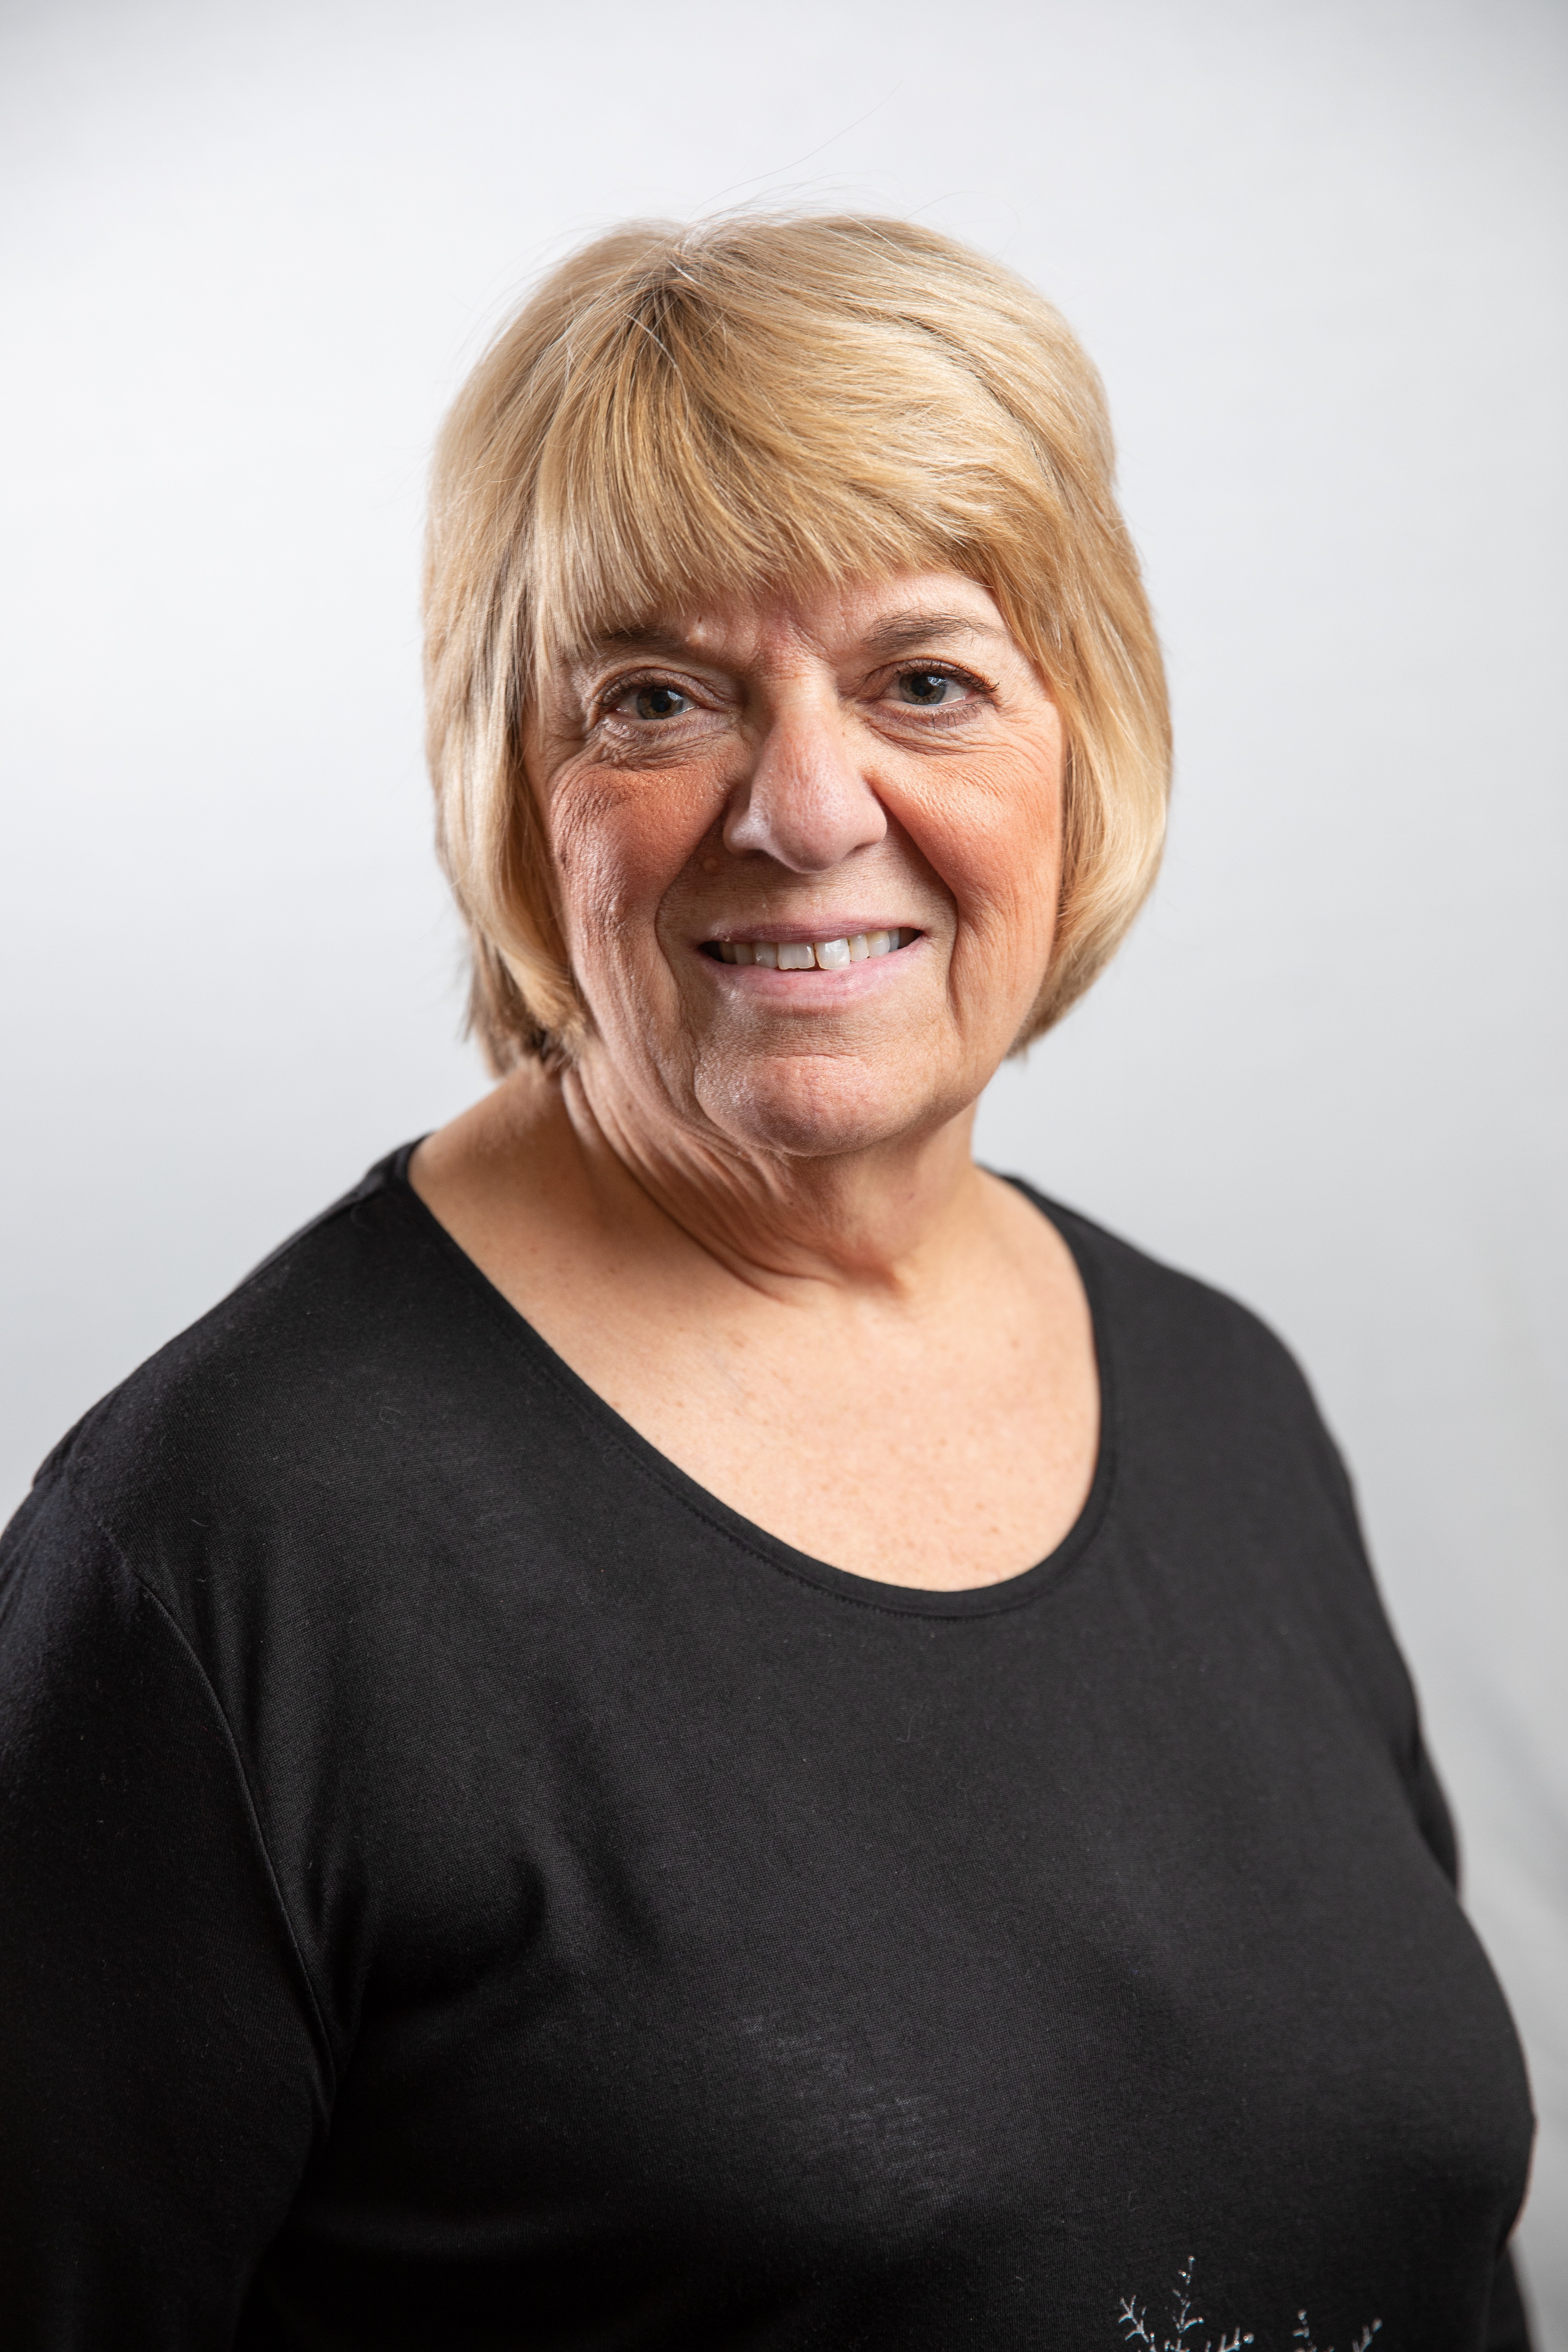 Joanne Murphy – Clinical Support Staff